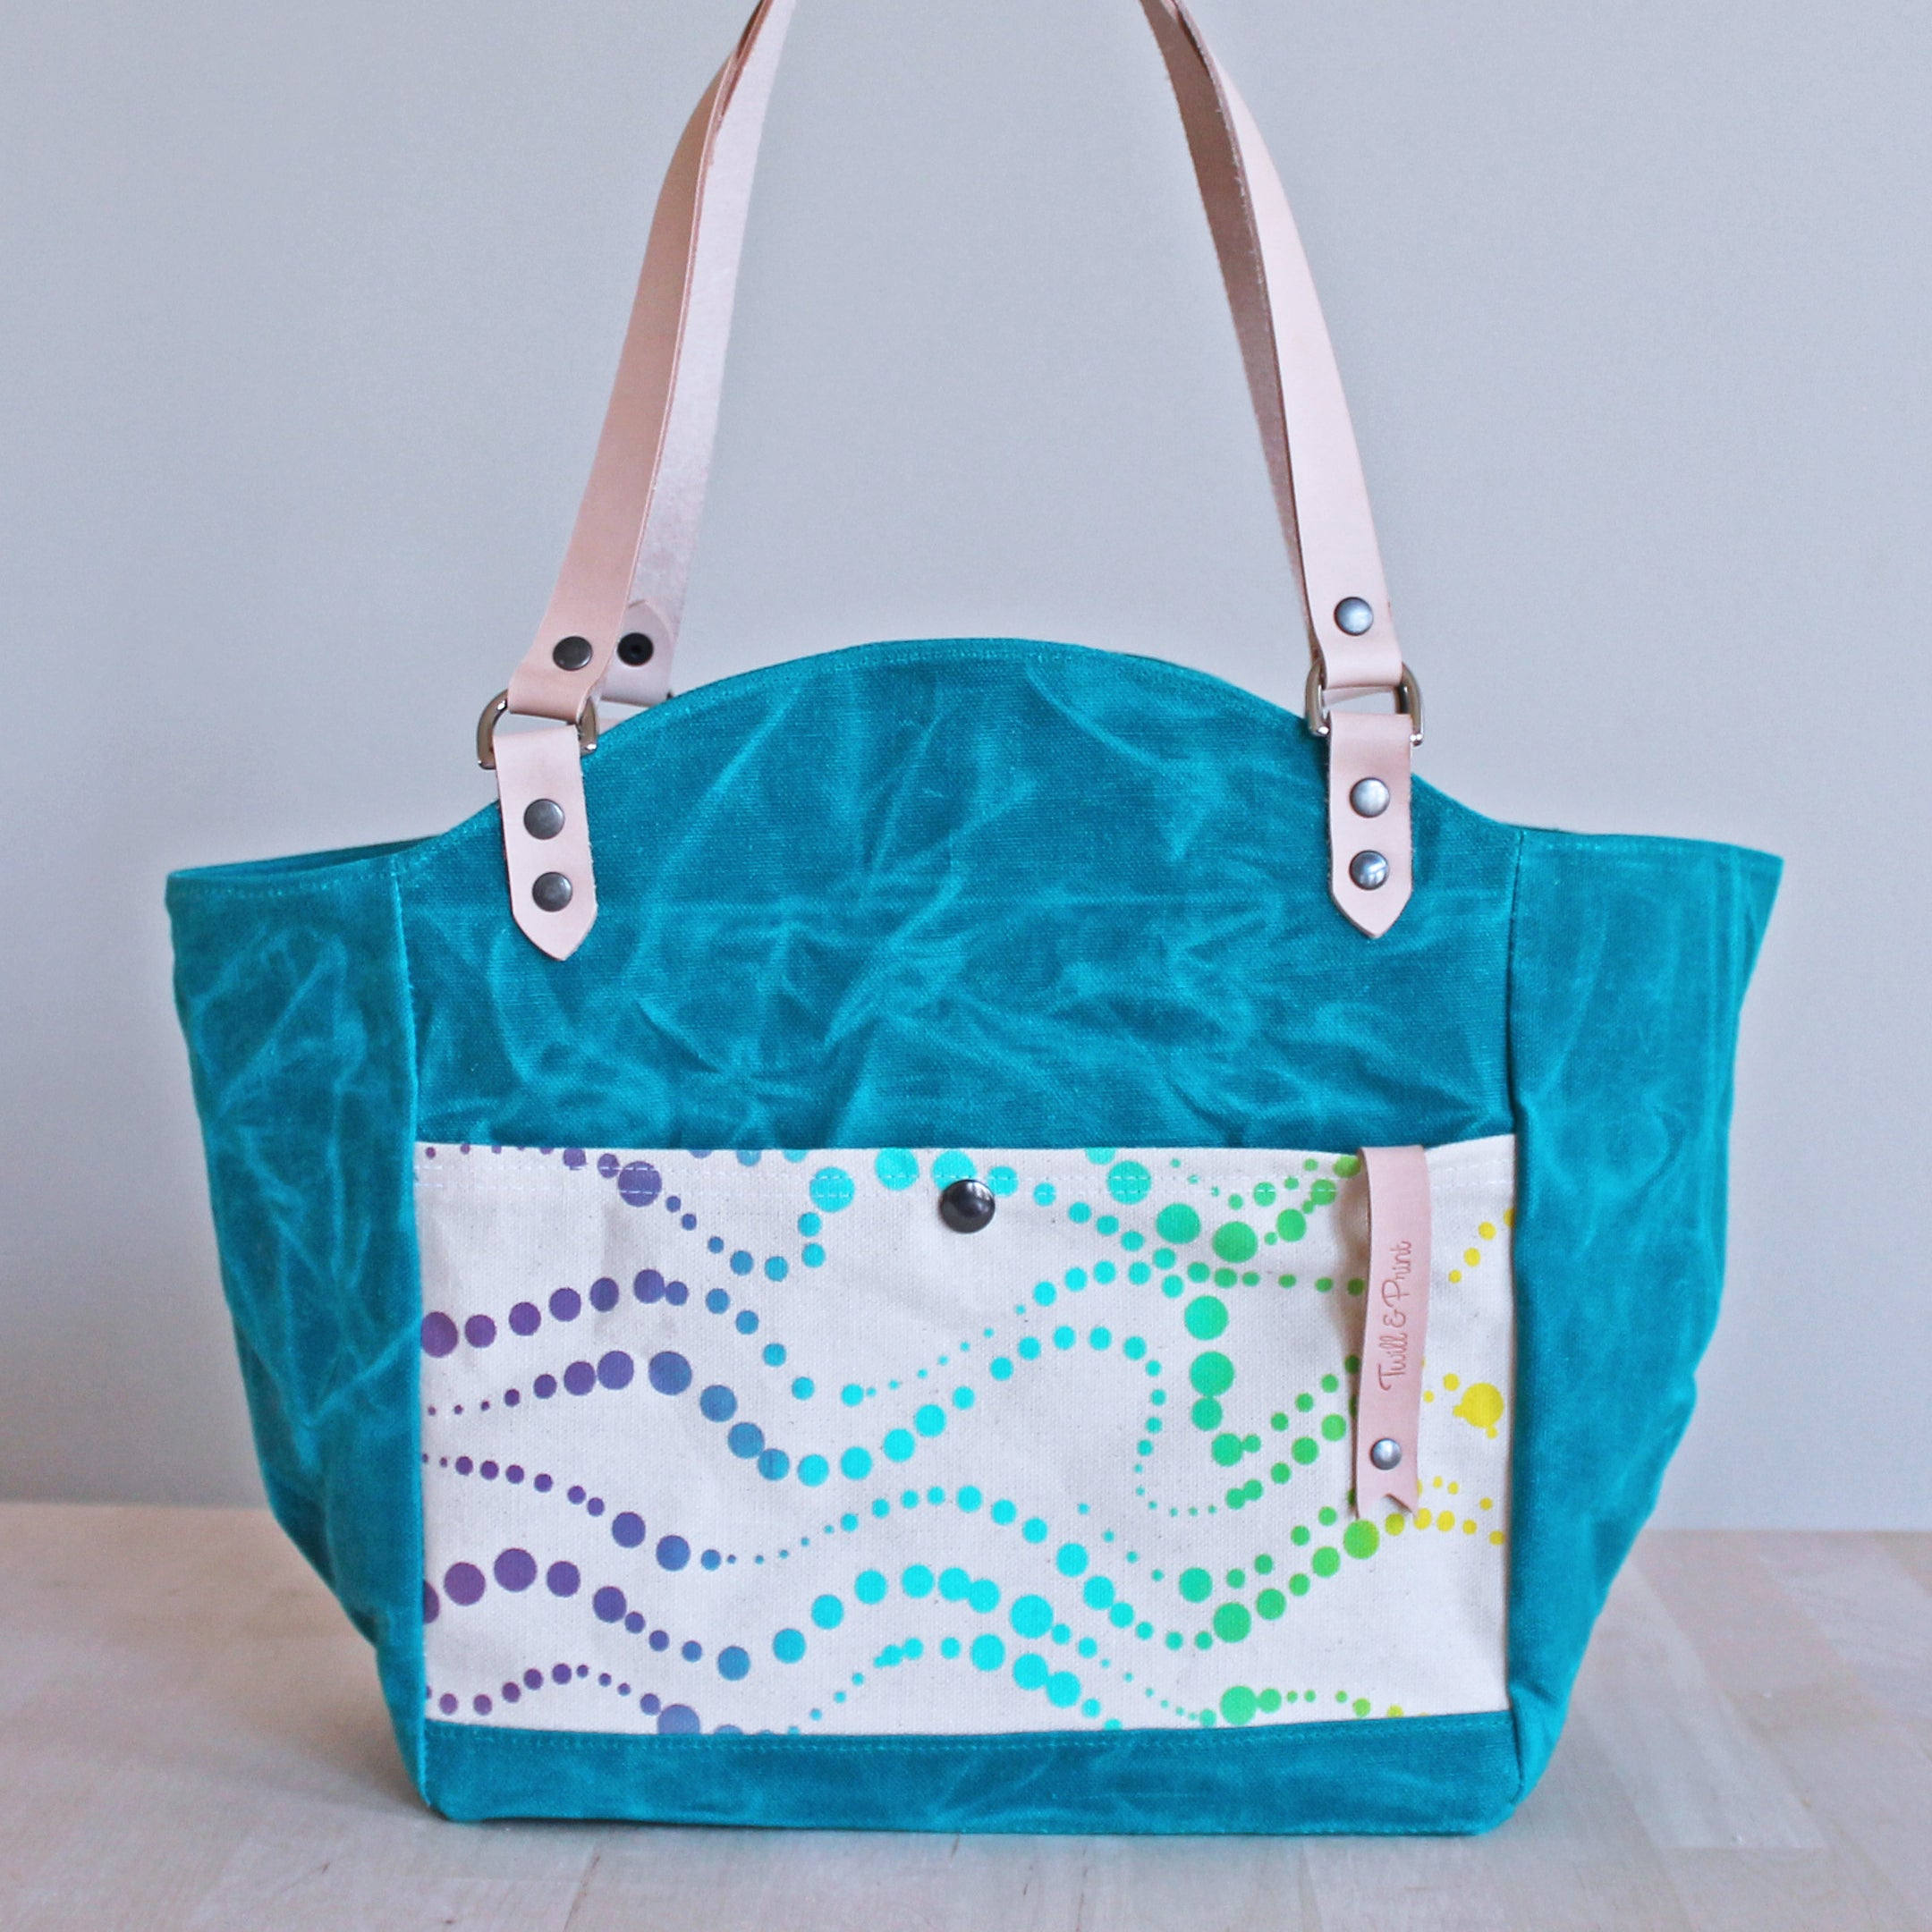 Special Edition Prints - Abettor Tote Bag (2 Styles)